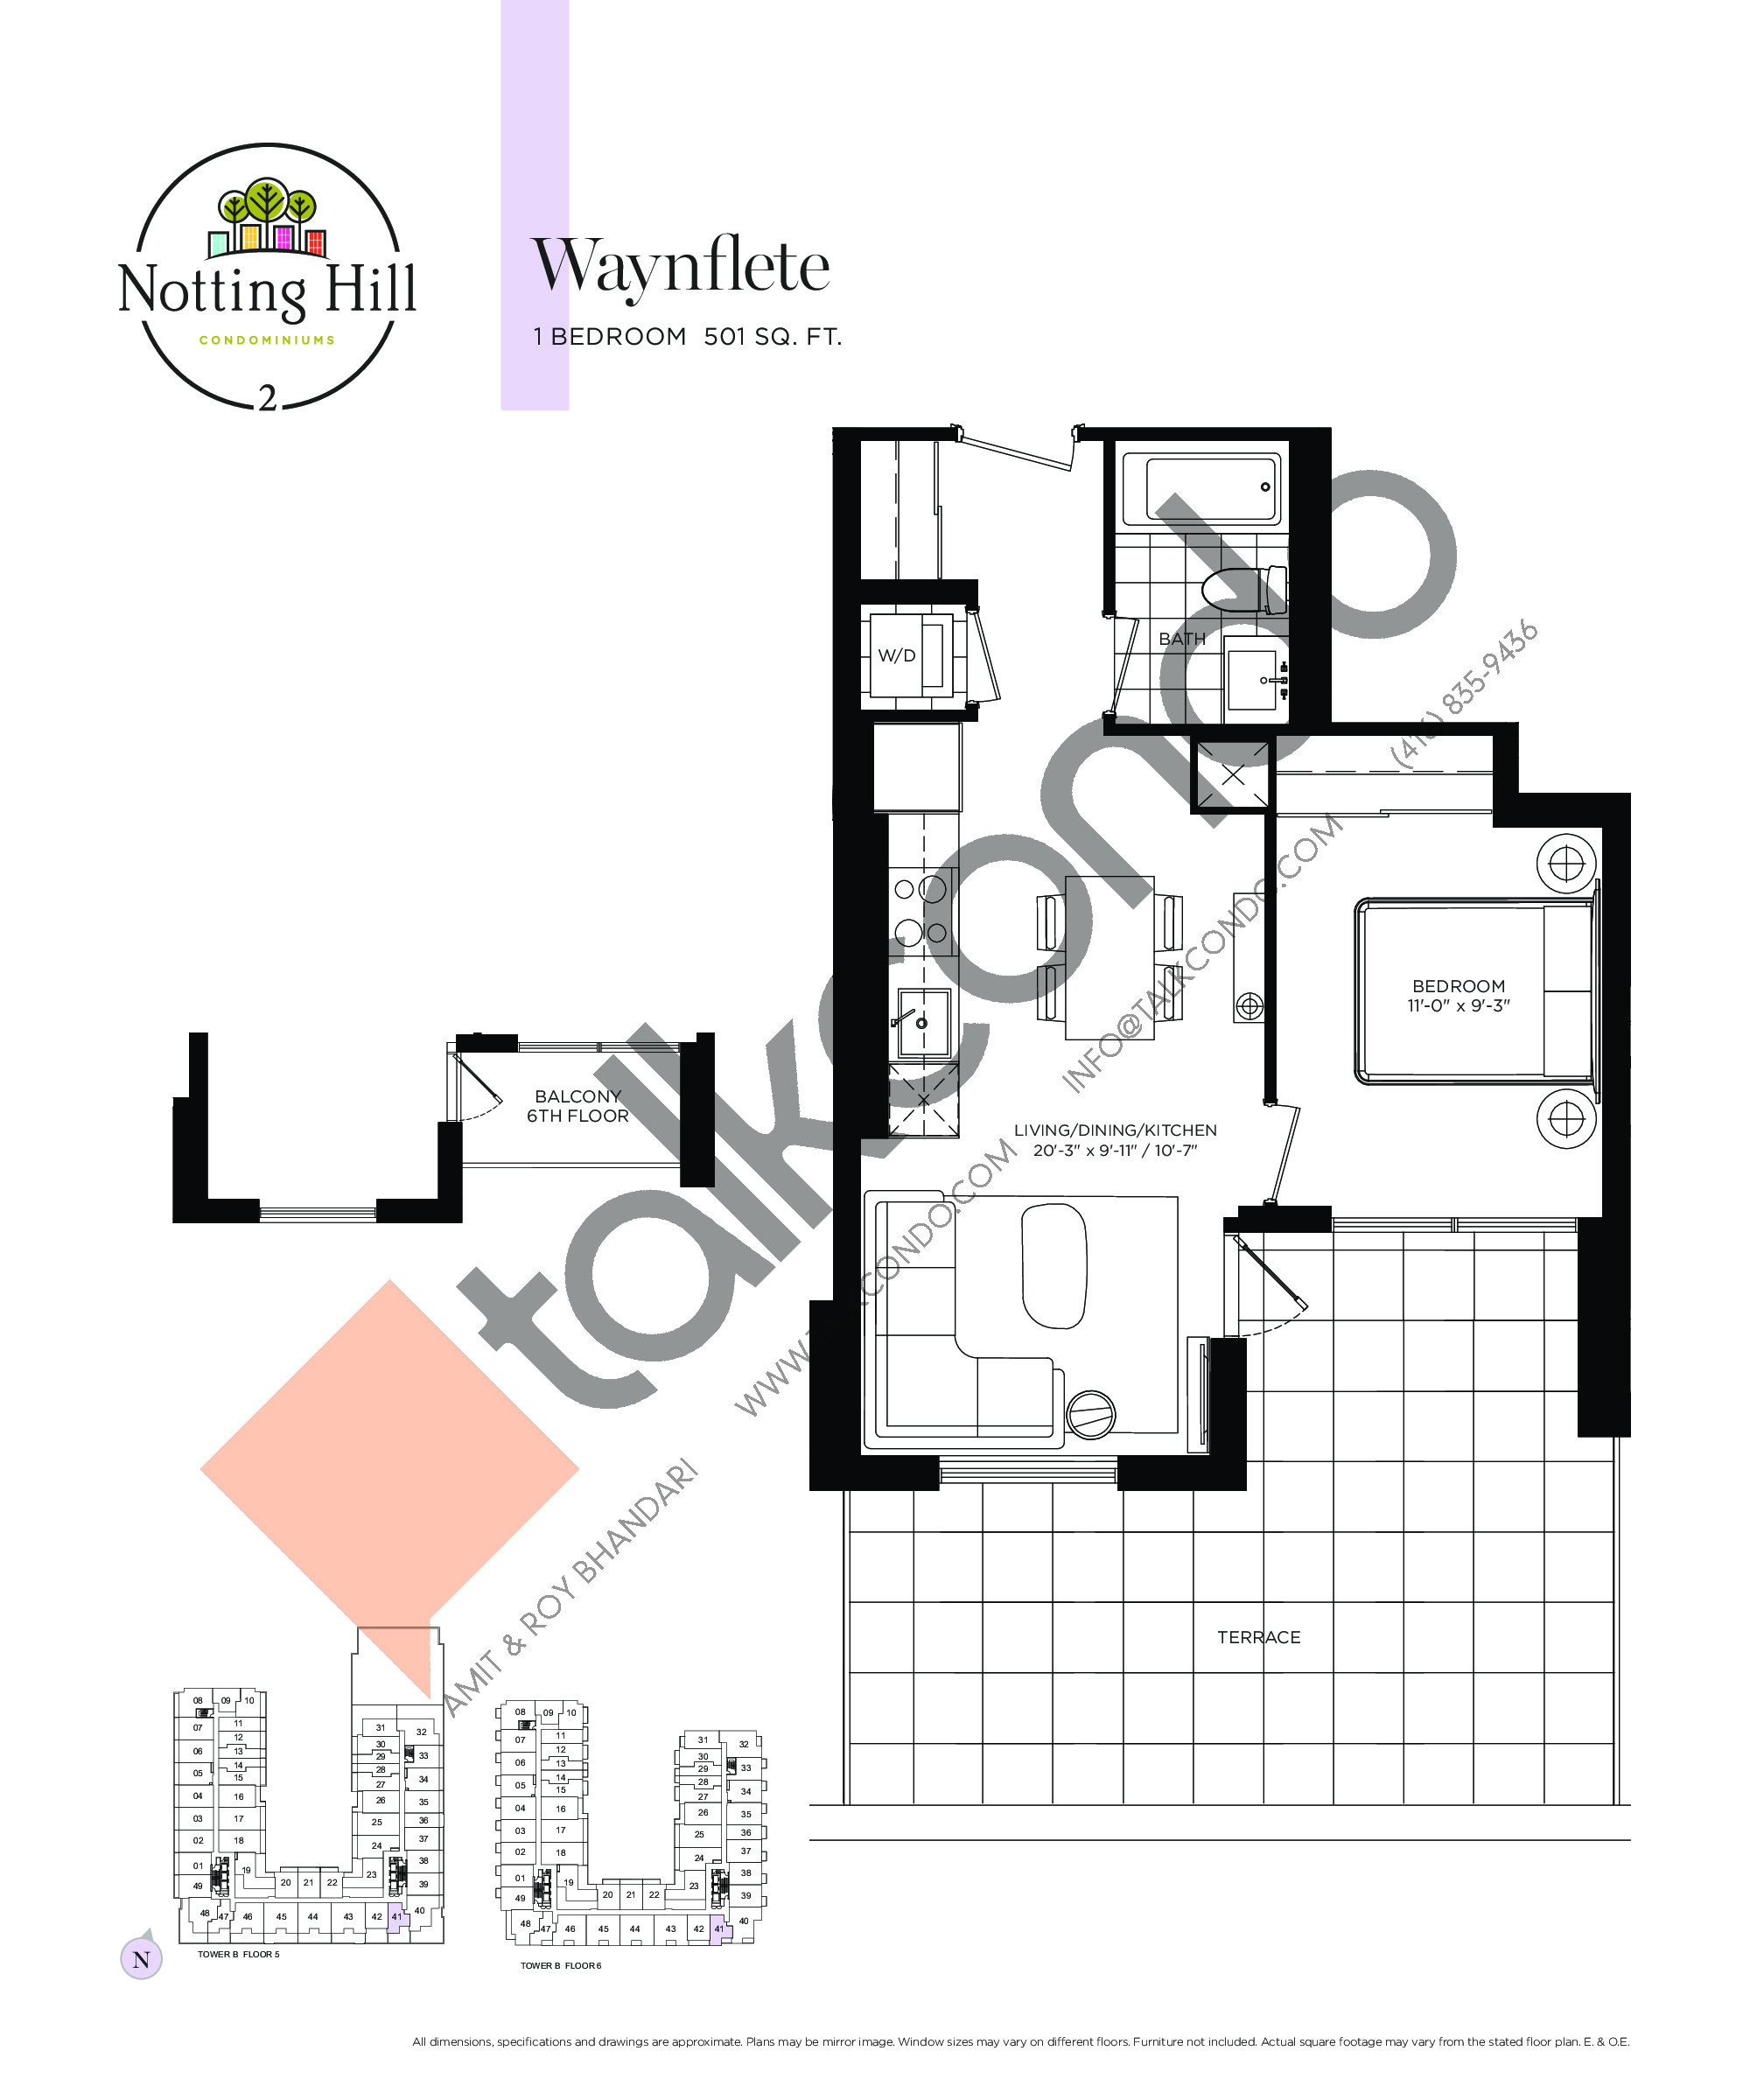 Waynflete Floor Plan at Notting Hill Phase 3 Condos - 501 sq.ft